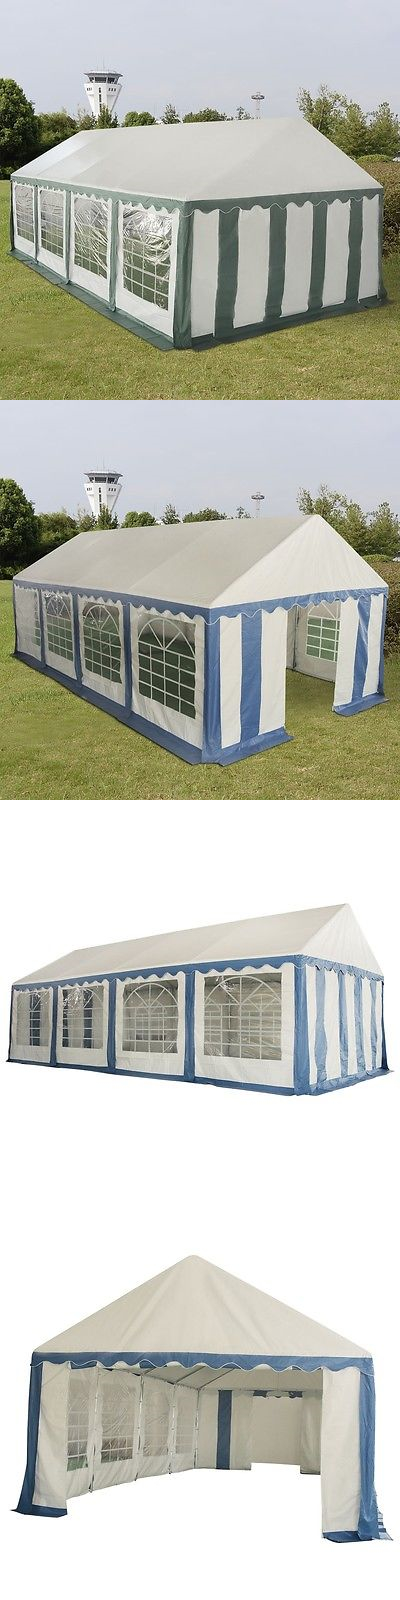 Marquees and Tents 180994 13 X26 Outdoor Professional Tent Patio Gazebo Canopy Party Wedding Use & Marquees and Tents 180994: 13 X26 Outdoor Professional Tent Patio ...